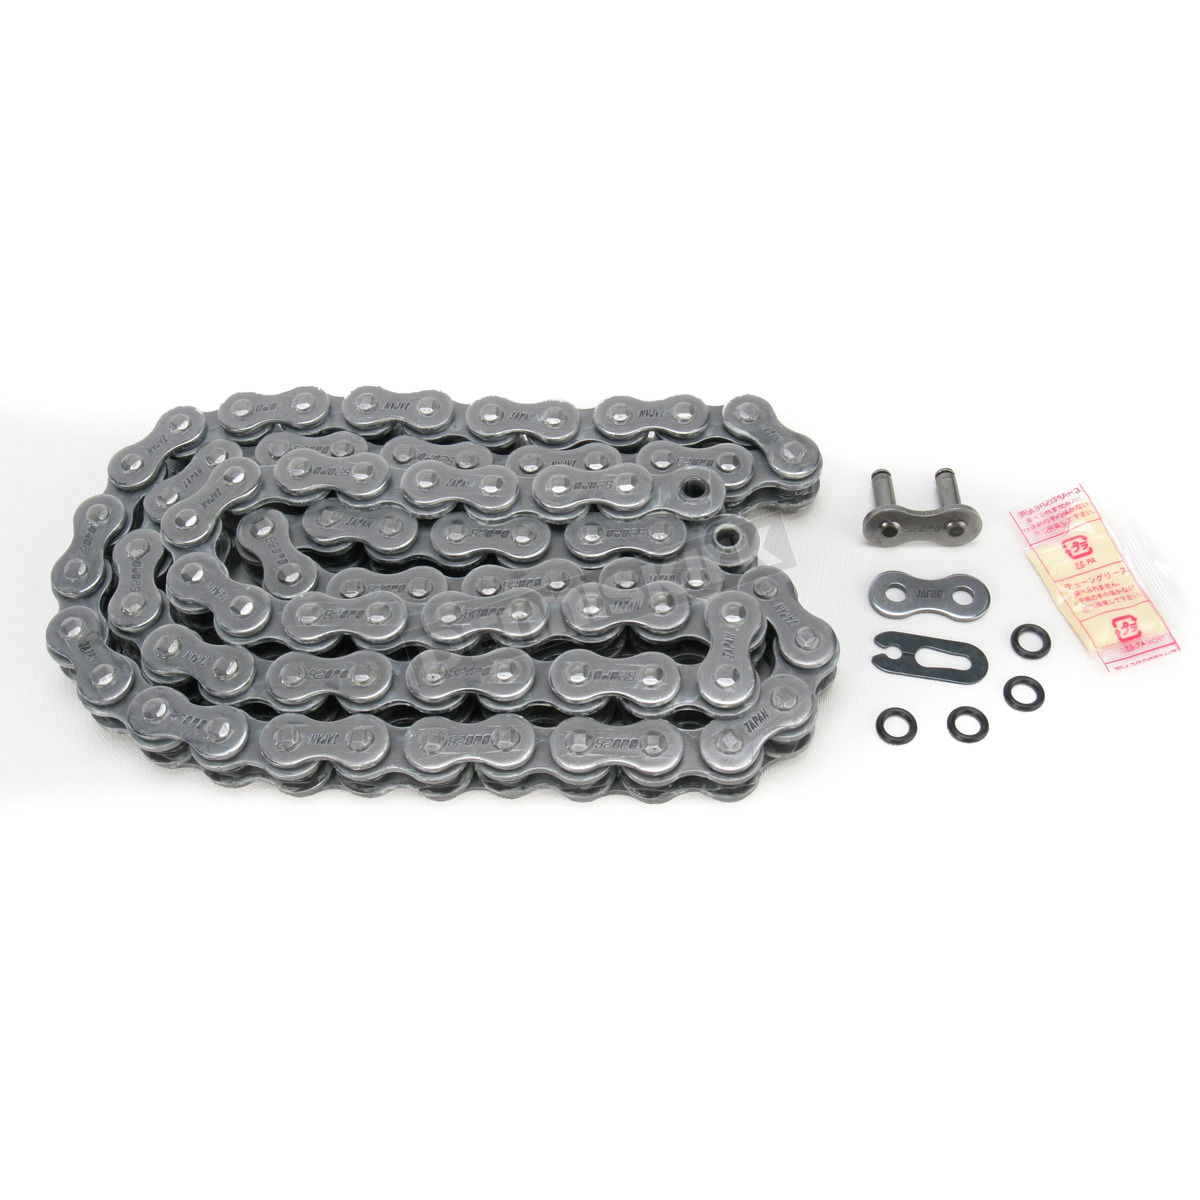 Parts Unlimited Standard Motorcycle Chain 520-96L